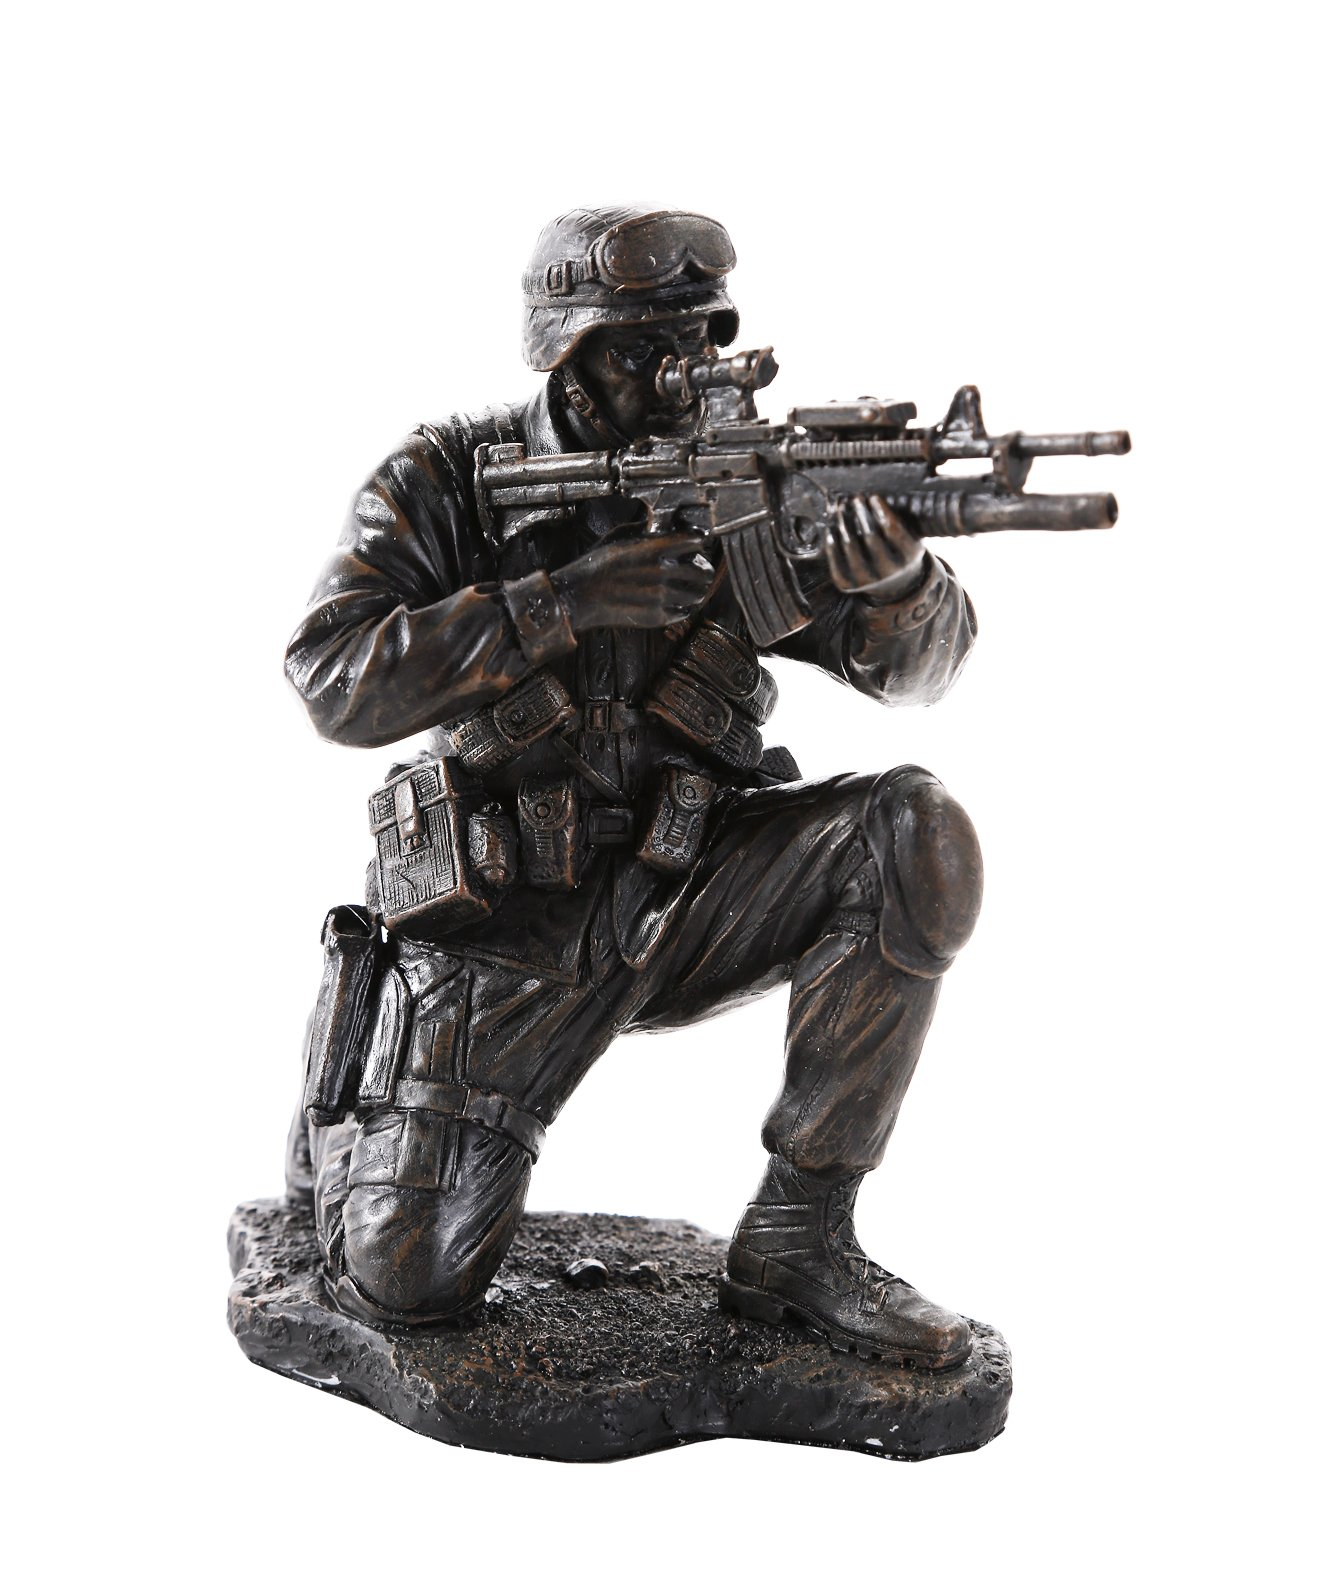 Pacific Giftware America's Finest Brave Soldier Military Heroes Collectible Figurine